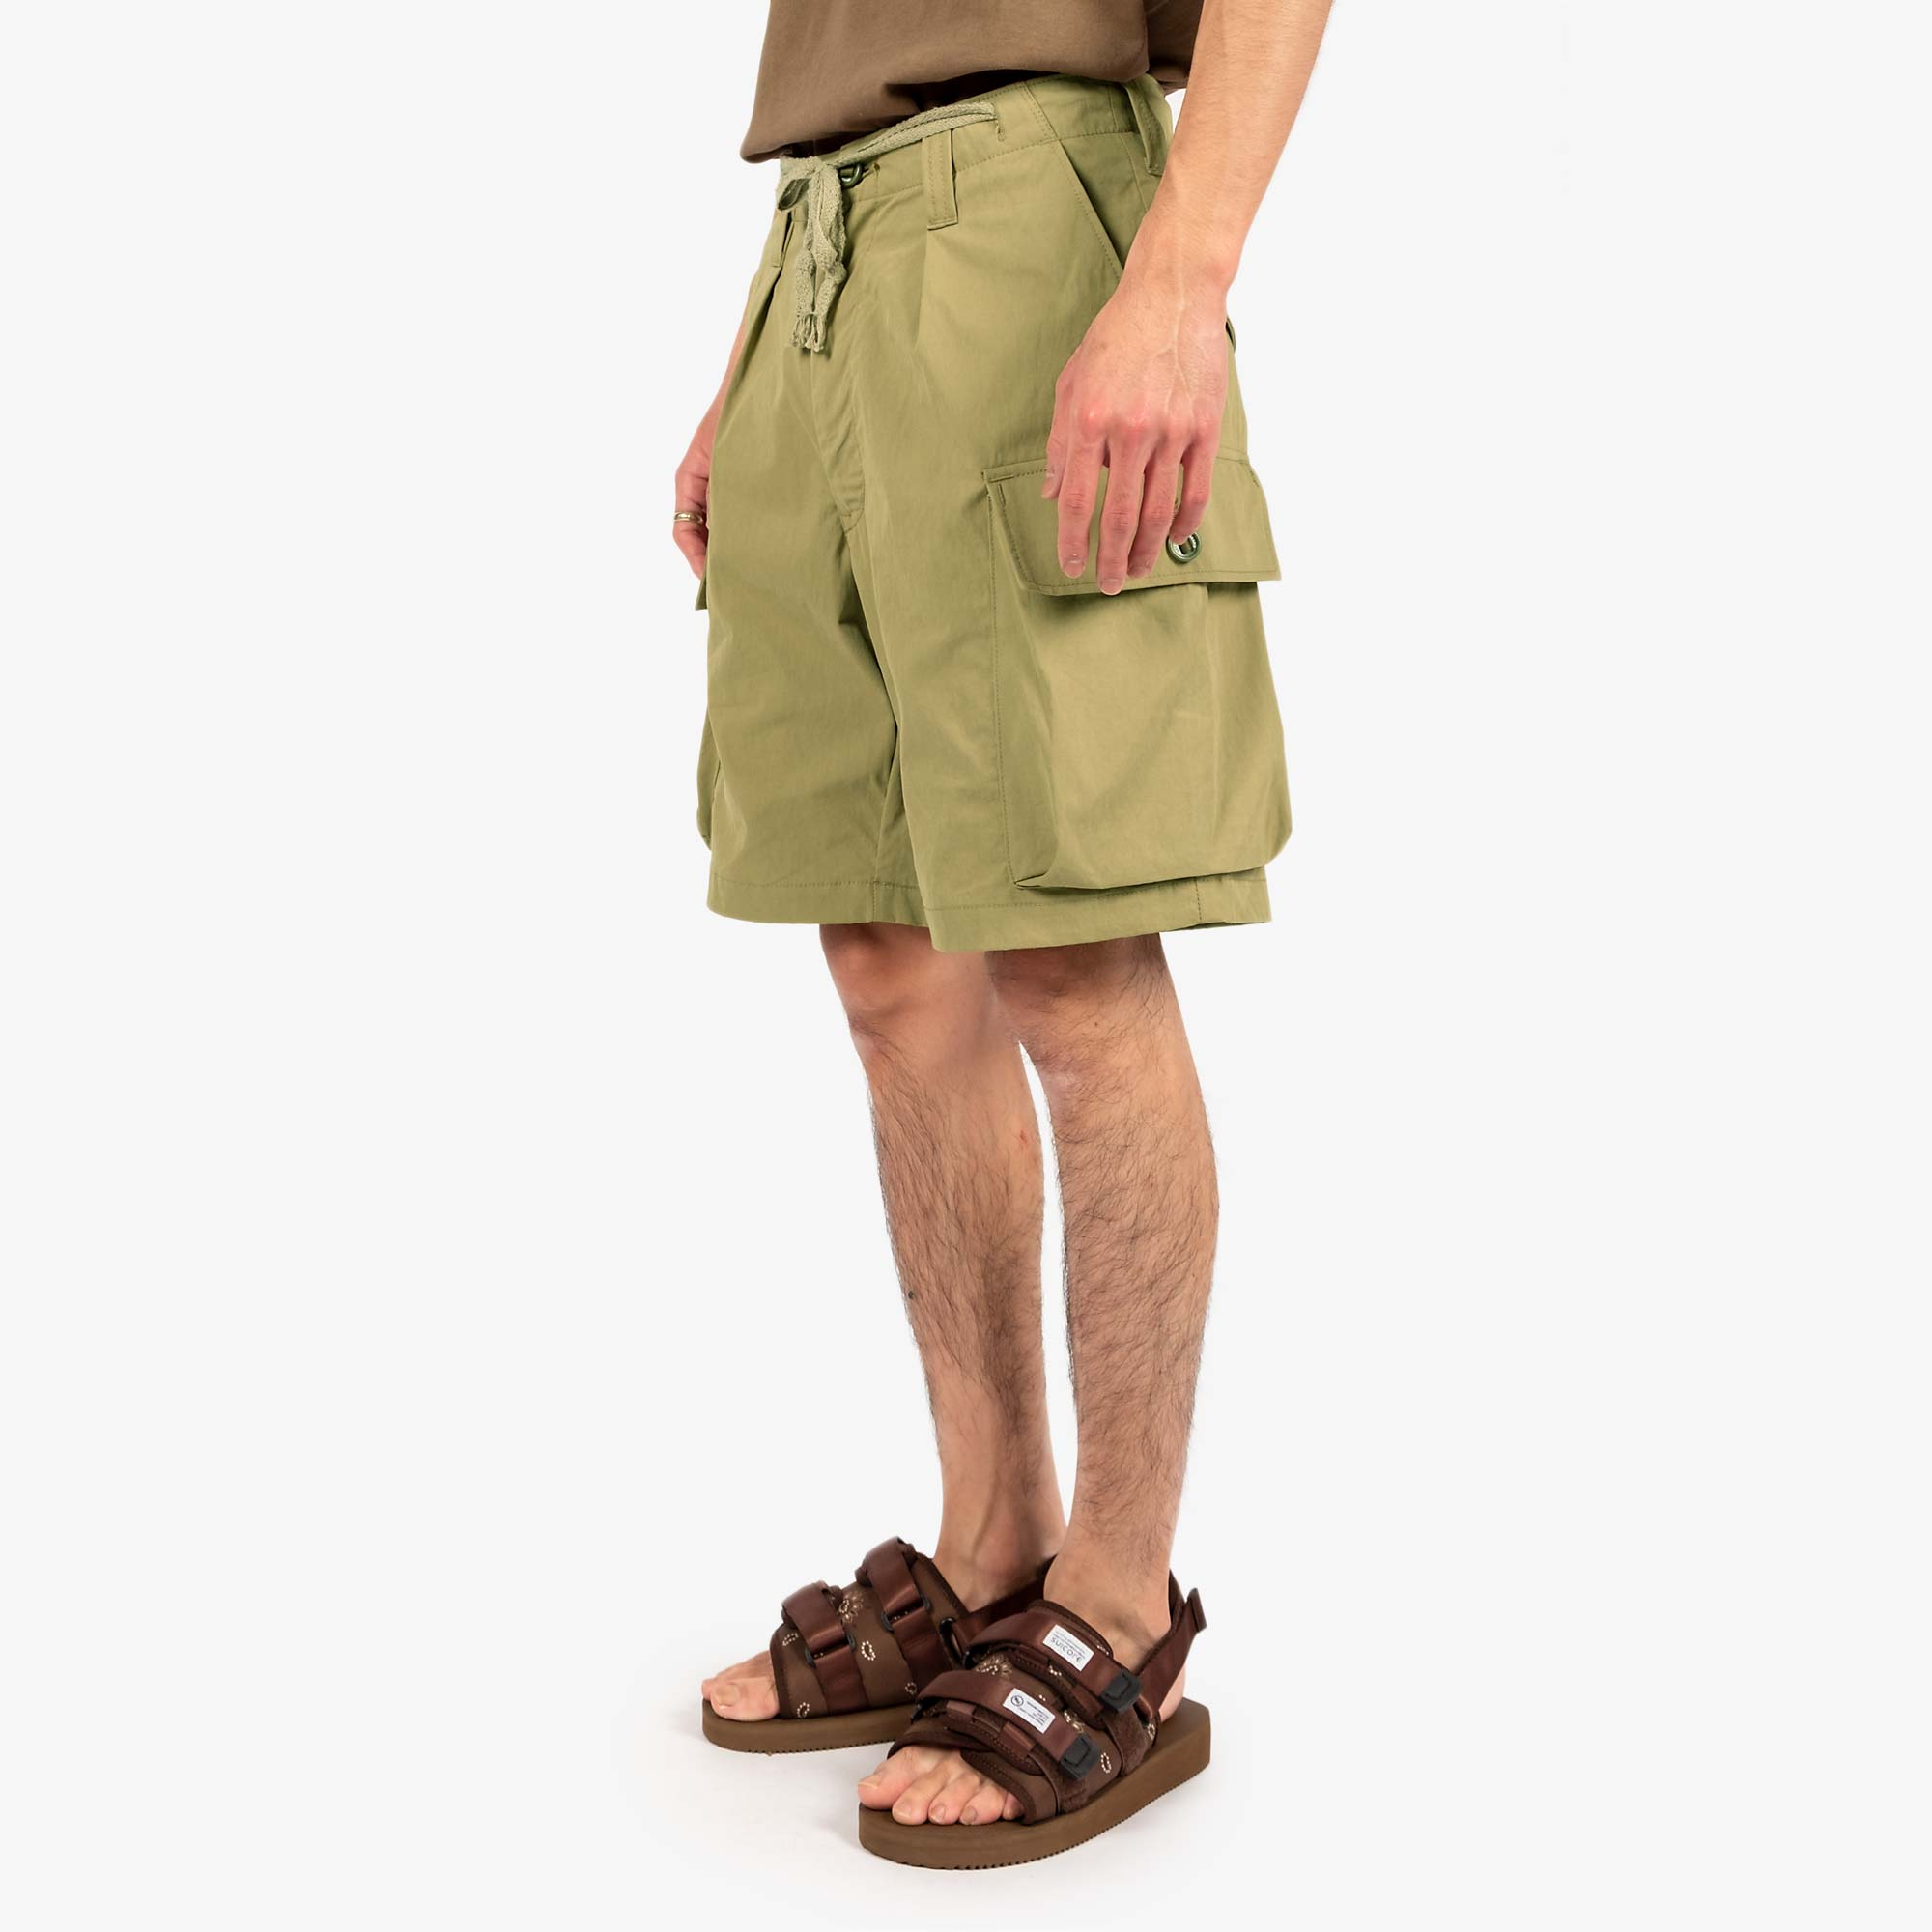 WTAPS Jungle Country Nyco Shorts - Olive Drab 9